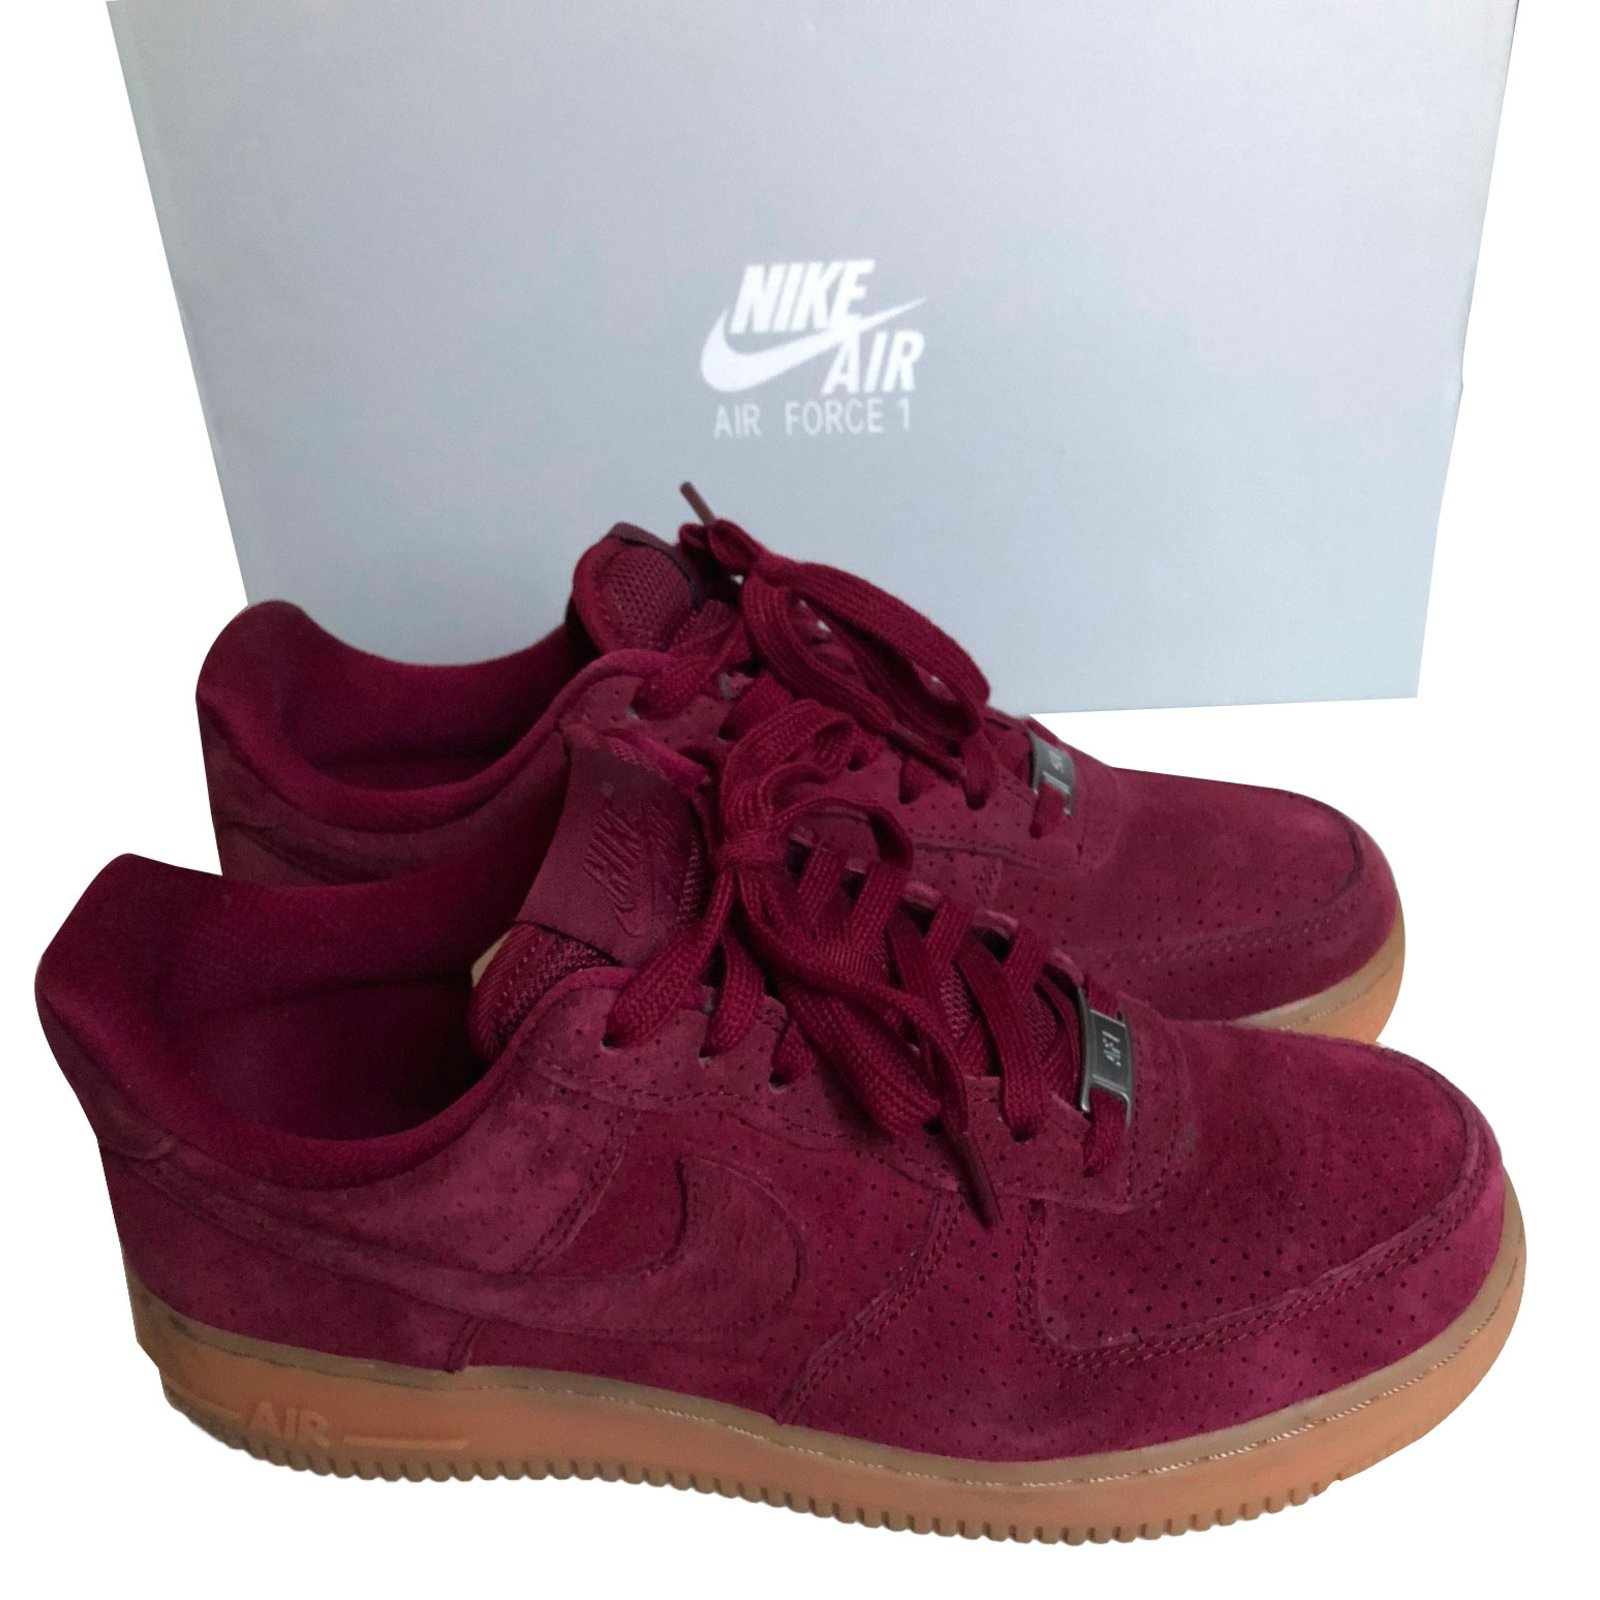 air force 1 noir en daim